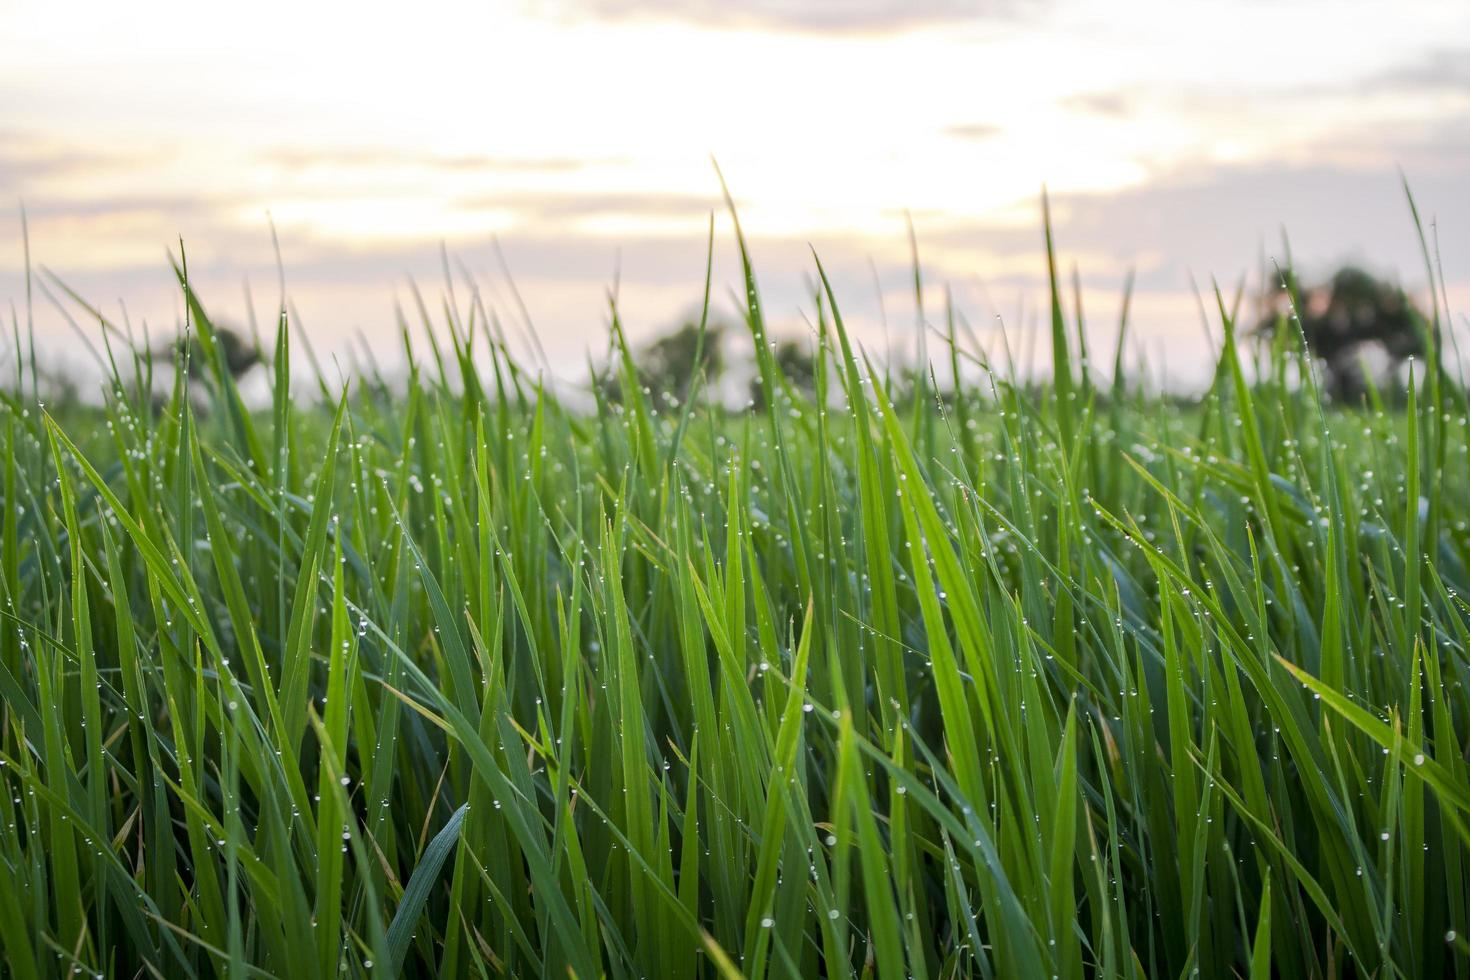 Close-up of a green grass field photo